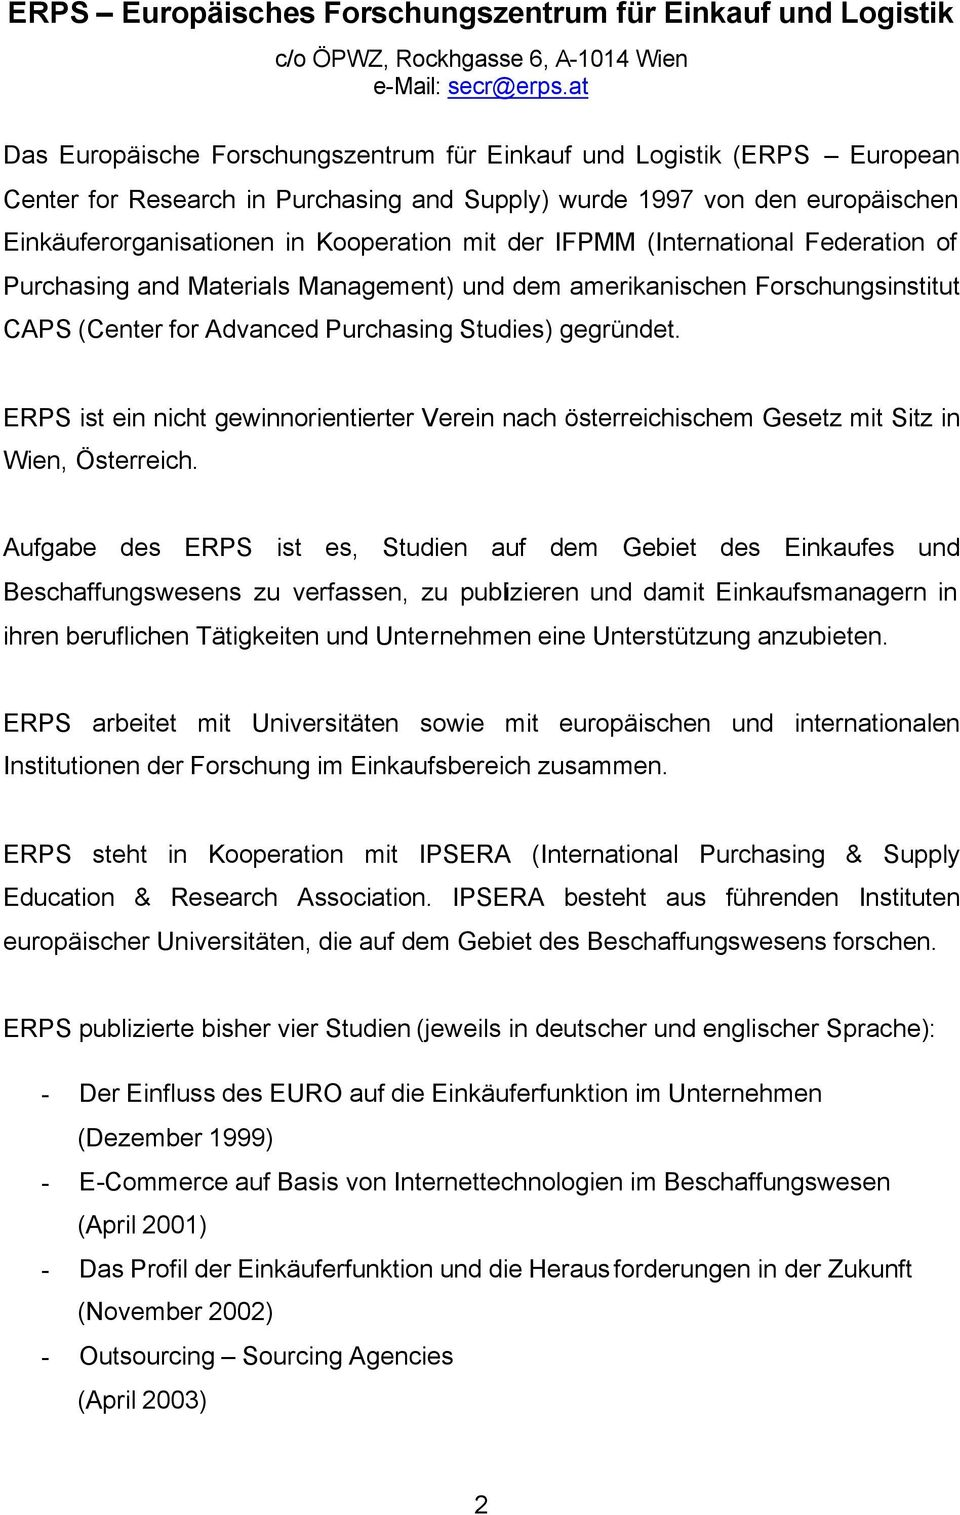 der IFPMM (International Federation of Purchasing and Materials Management) und dem amerikanischen Forschungsinstitut CAPS (Center for Advanced Purchasing Studies) gegründet.